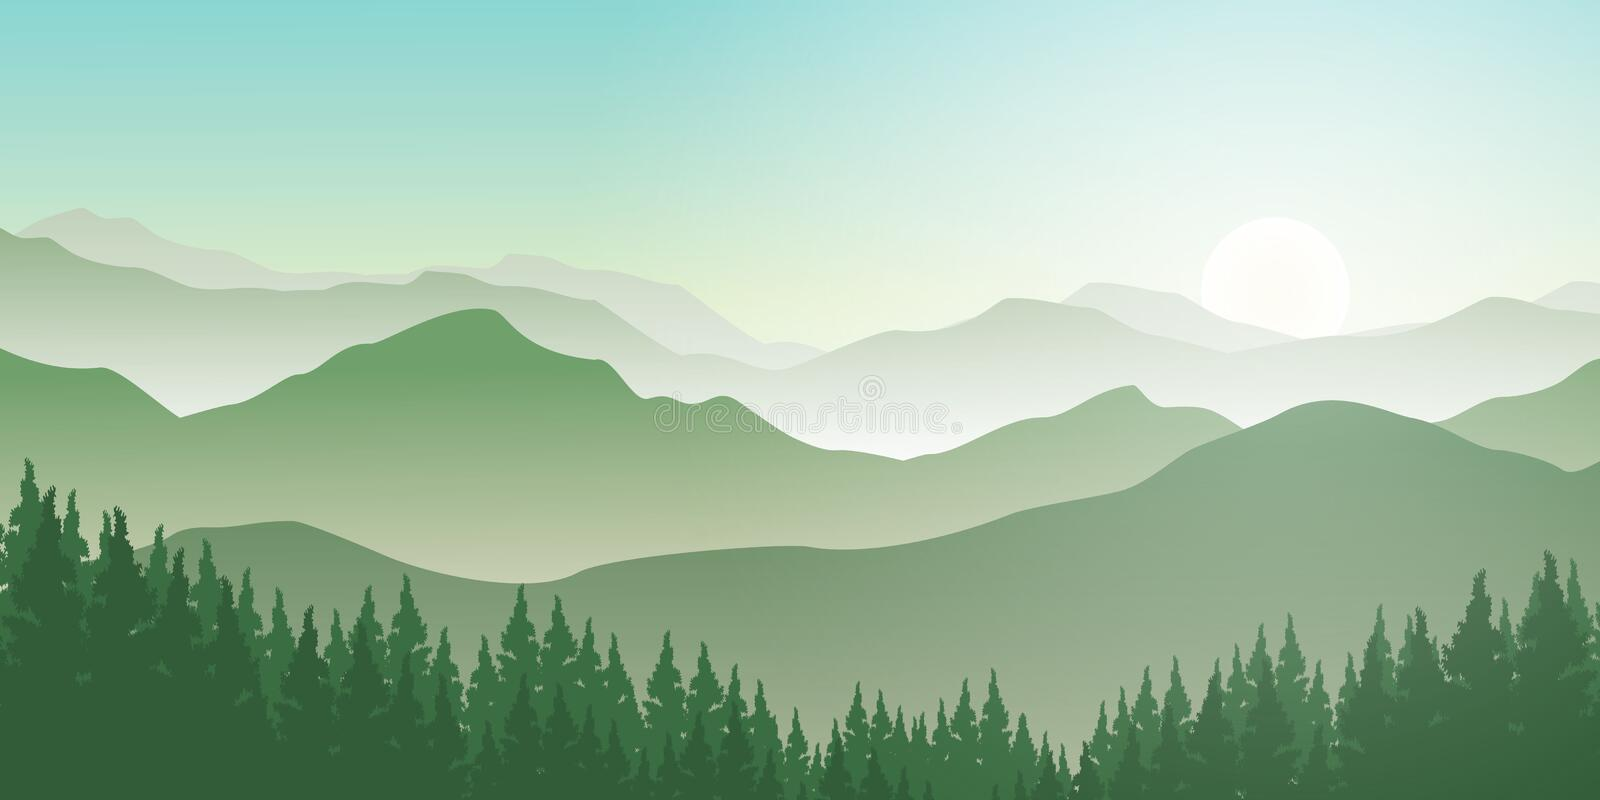 Mountains landscape with pines forest and sunrise royalty free illustration